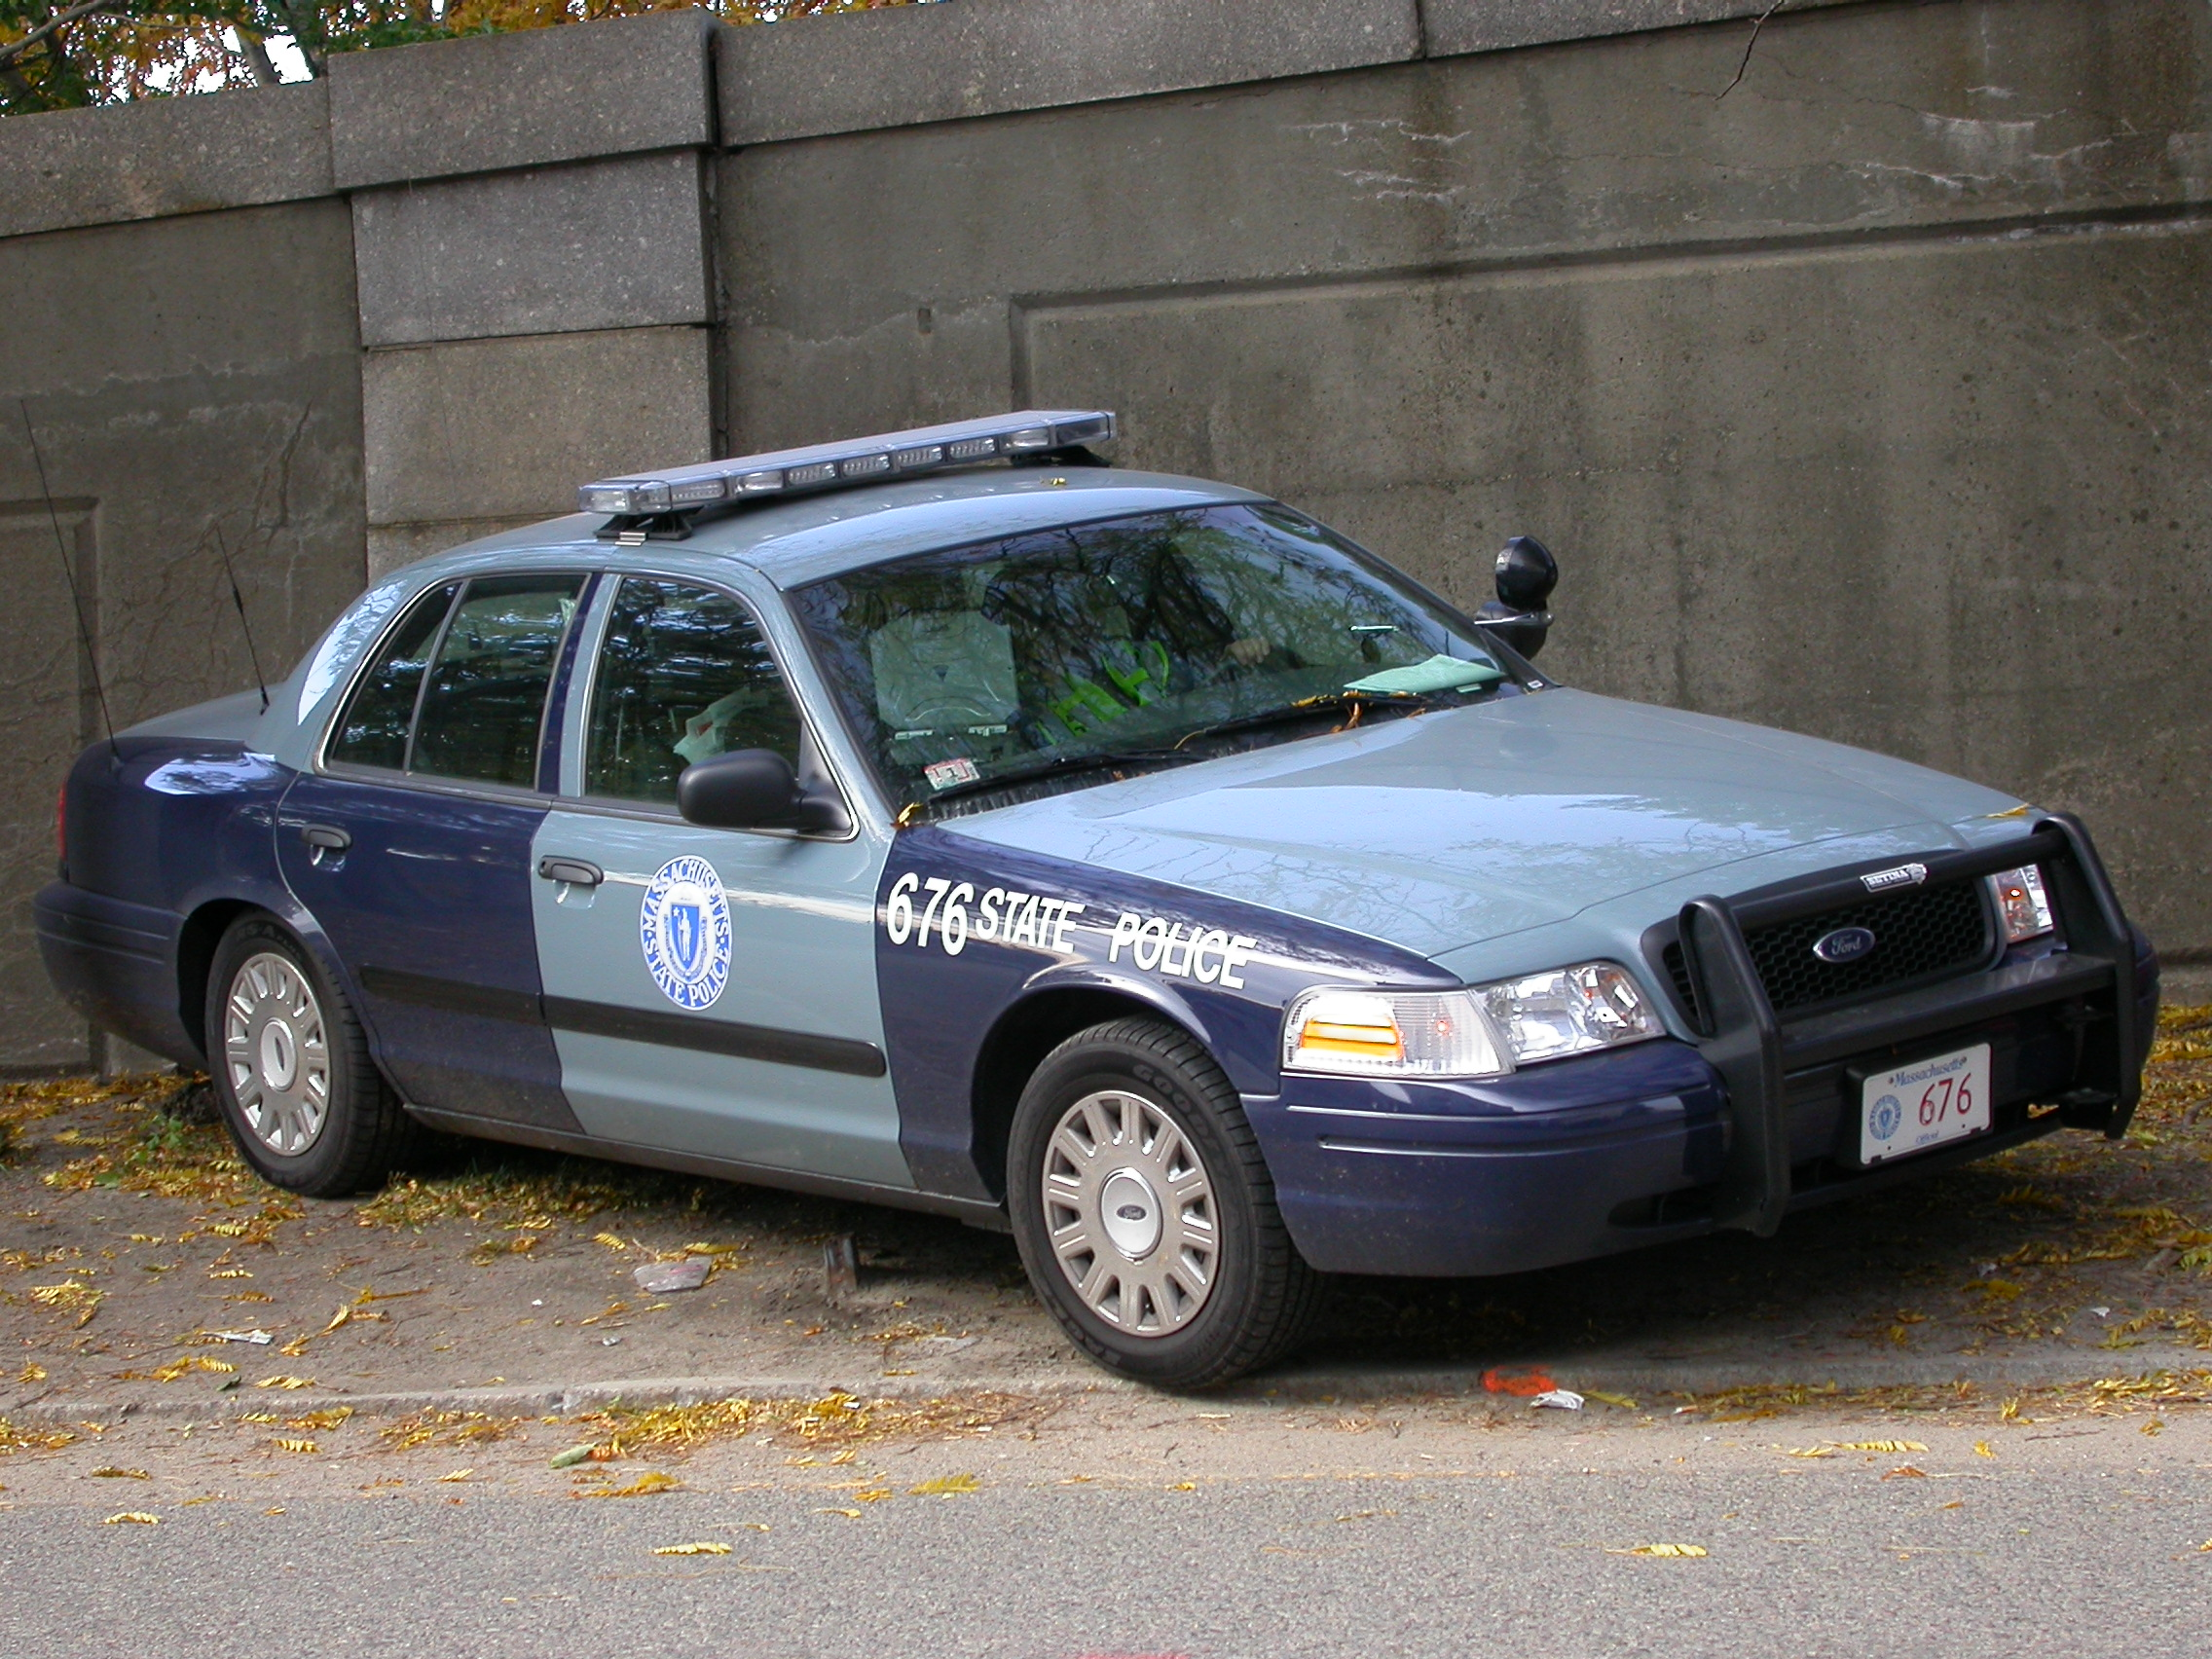 Used Michigan State Police Cars For Sale